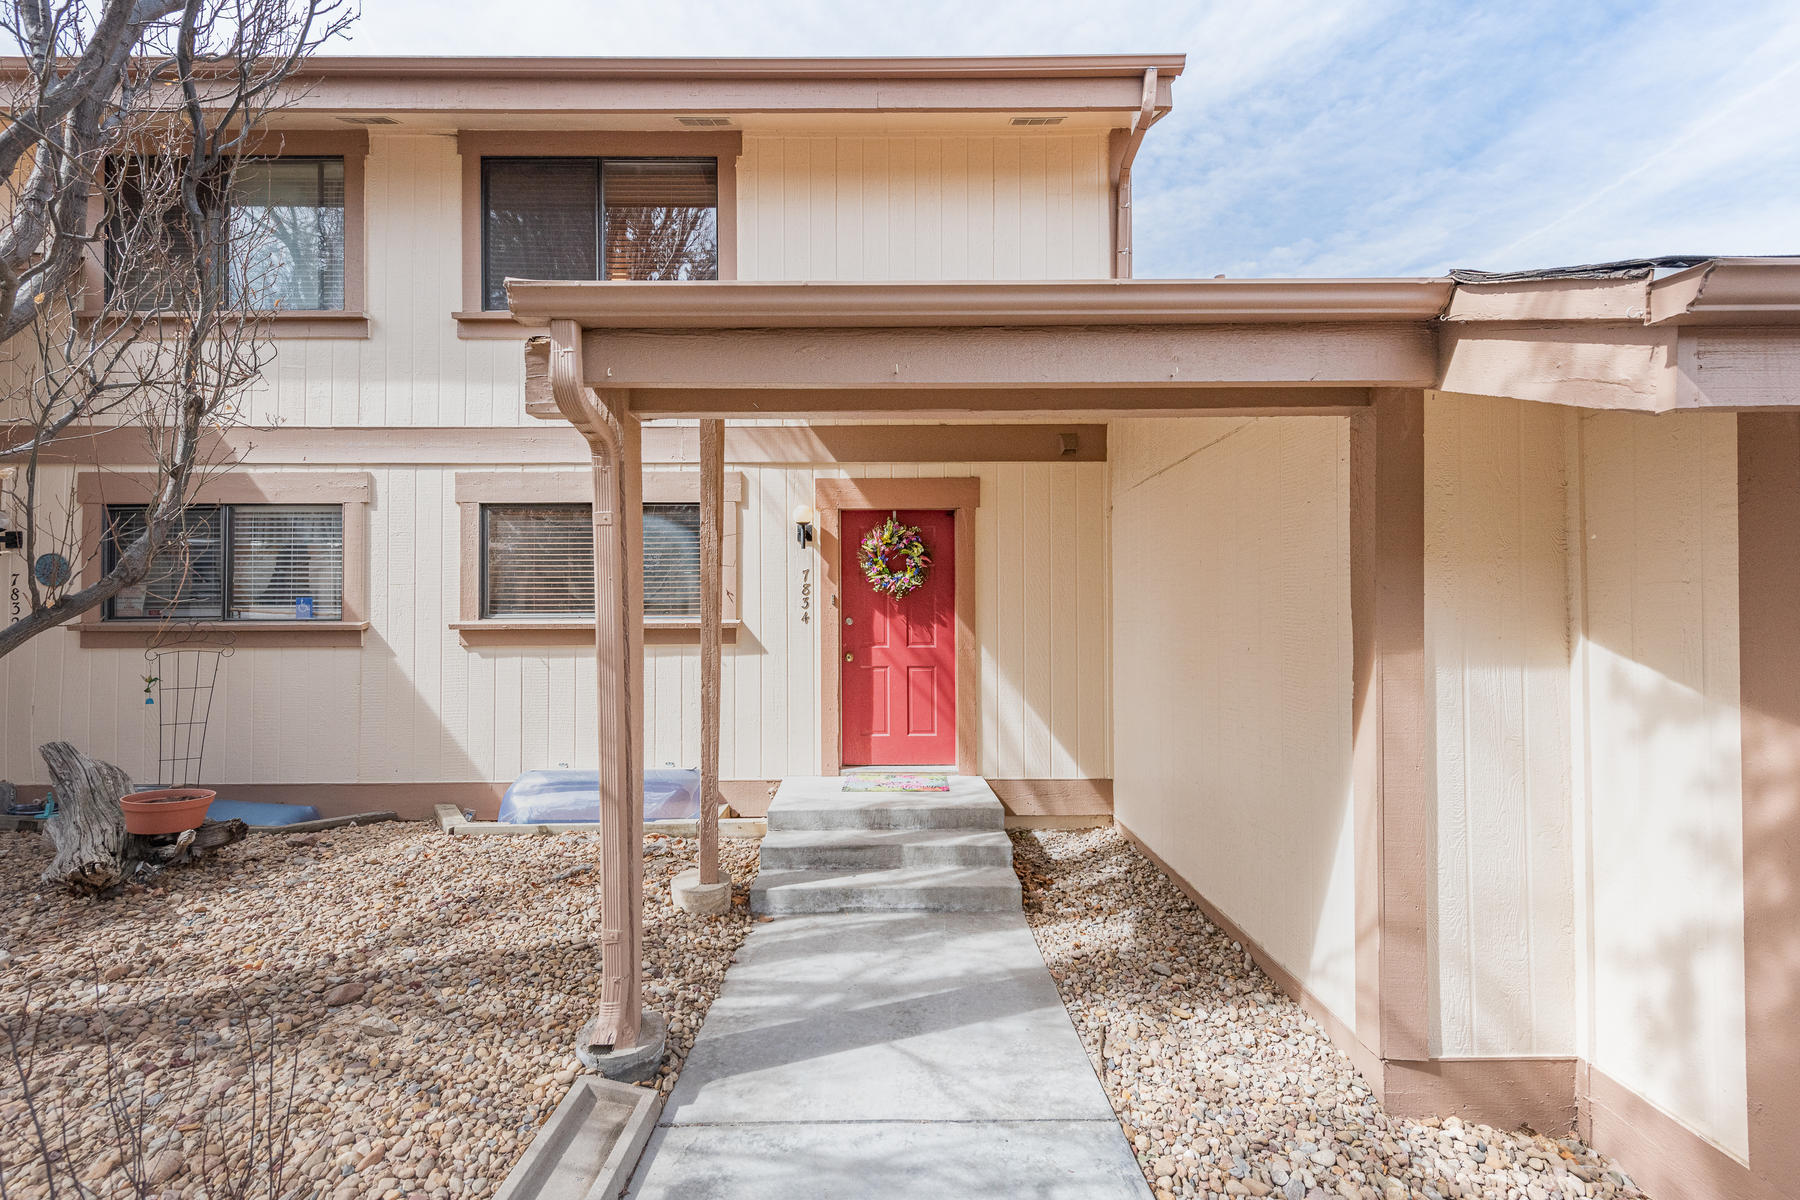 Single Family Homes のために 売買 アット Move-in Ready! 7834 W 90th Ave #69 Westminster, コロラド 80021 アメリカ